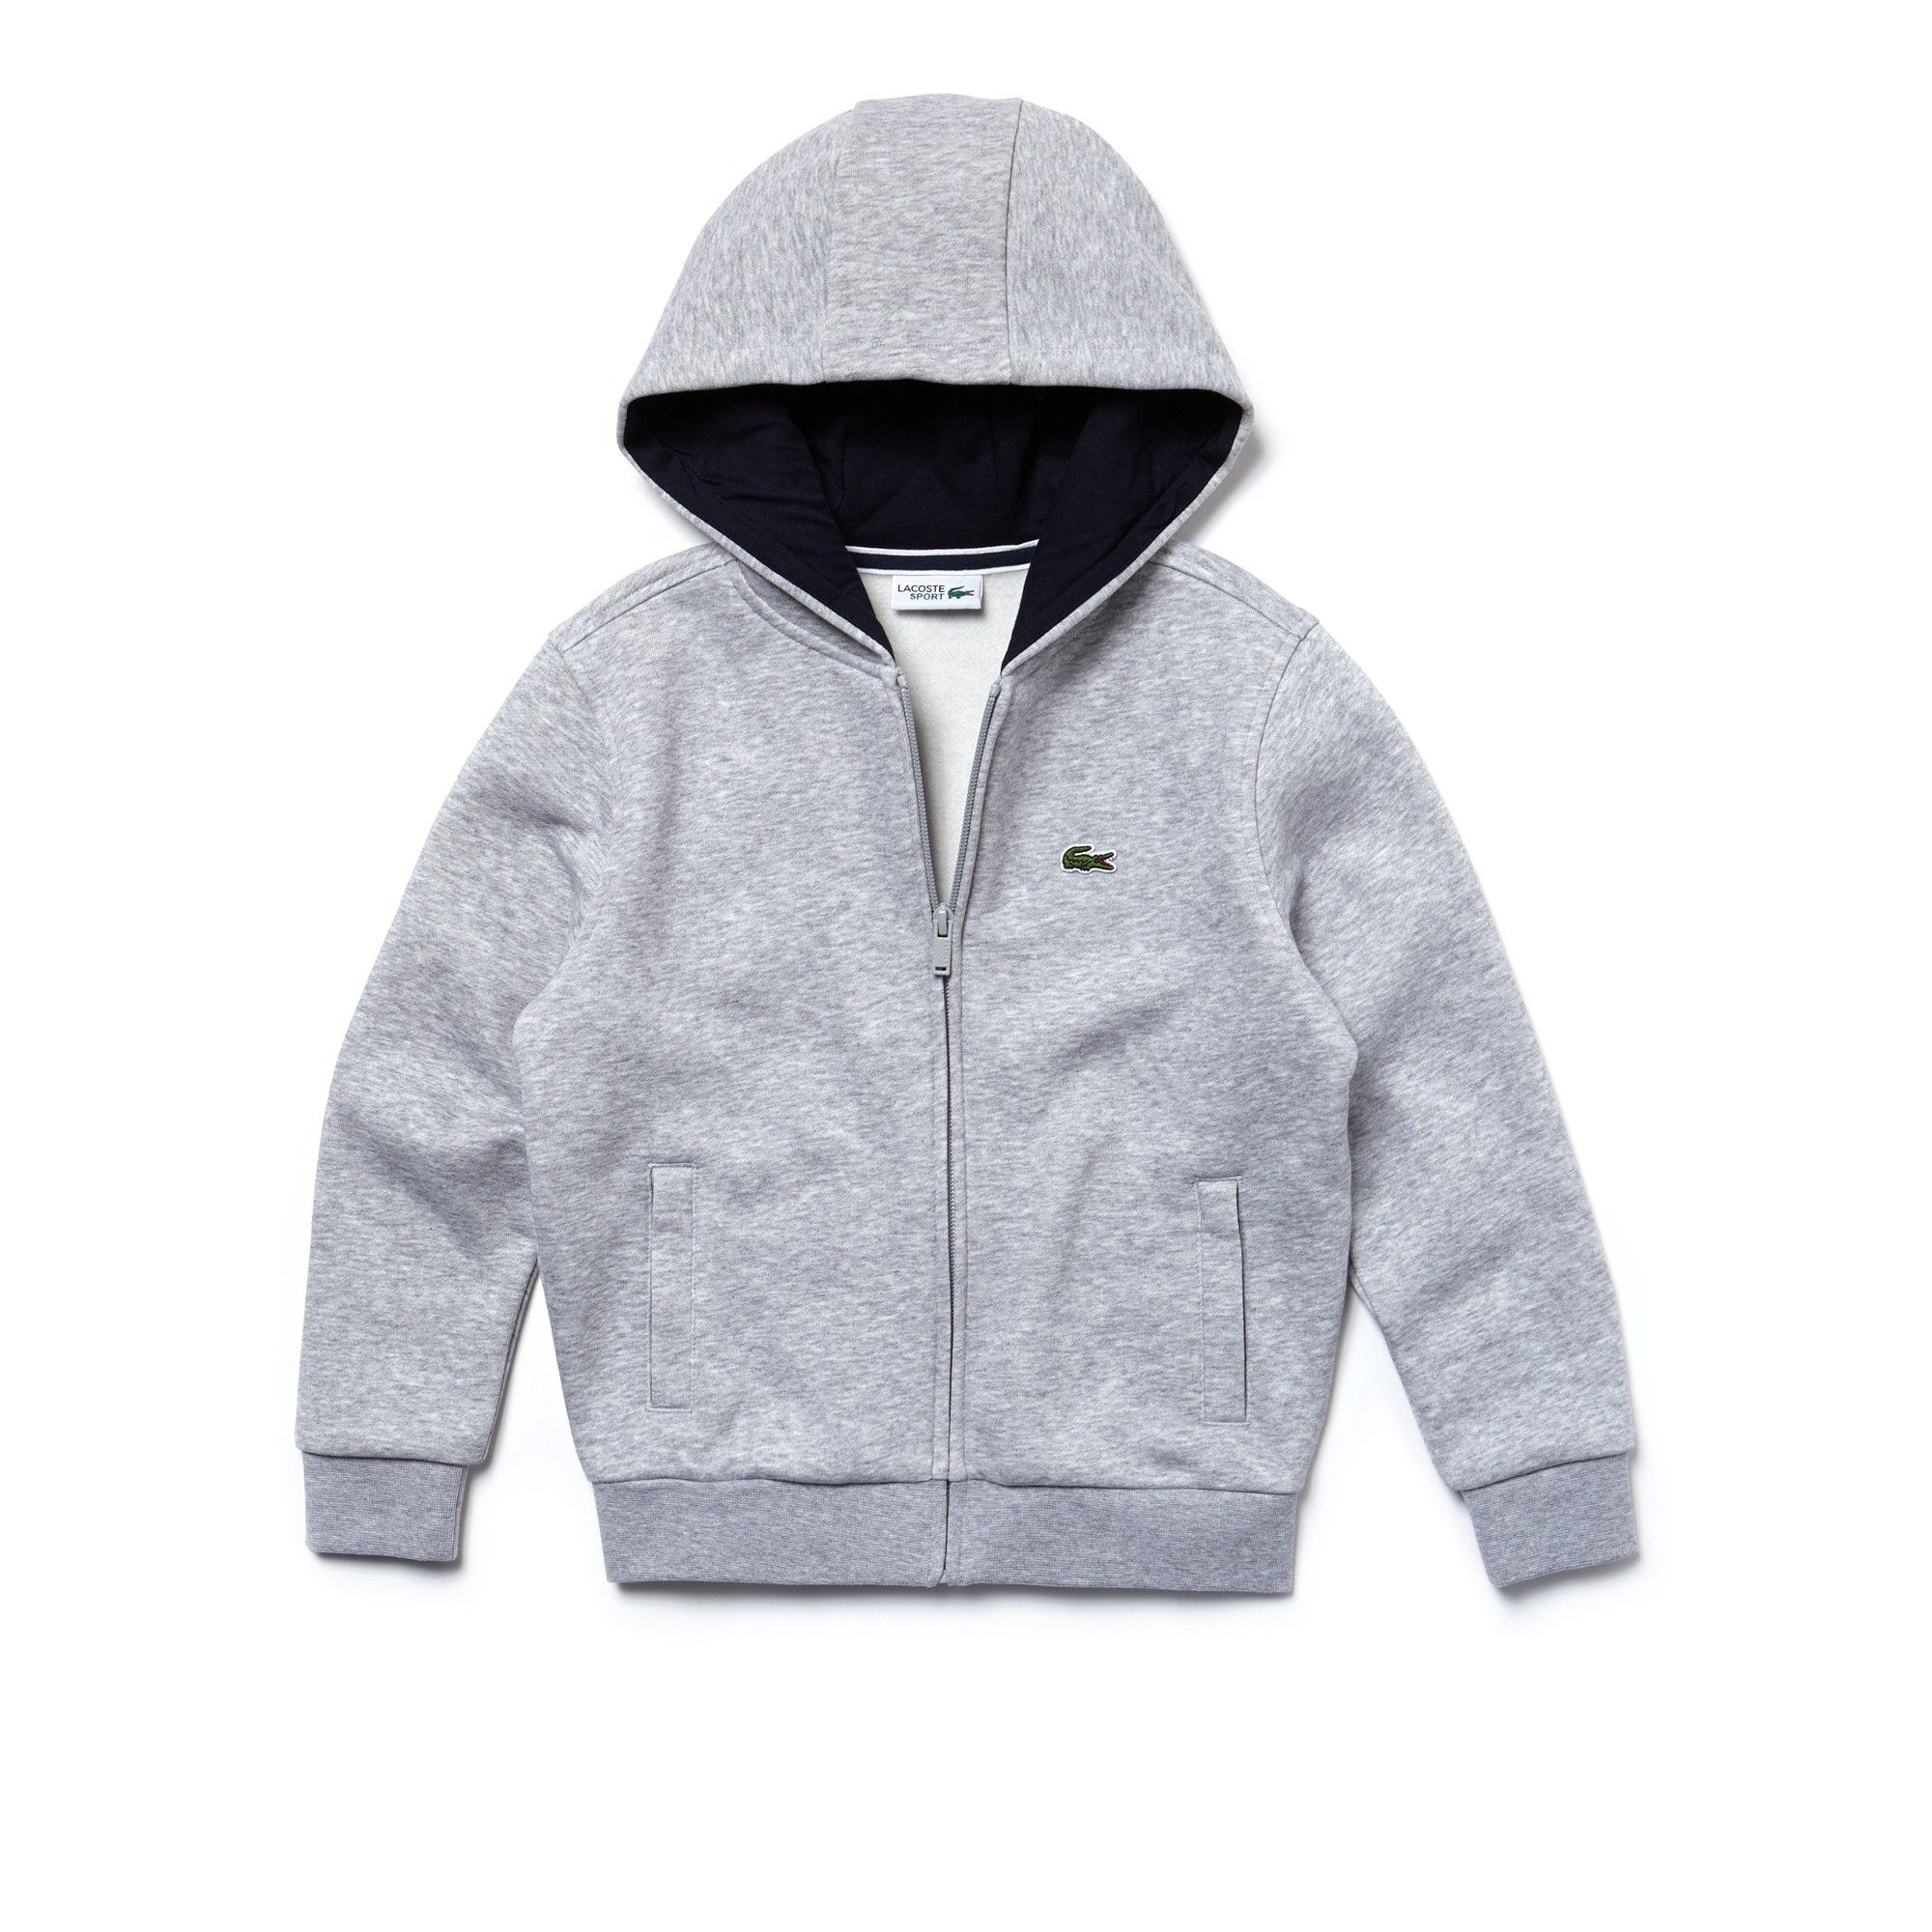 Kidsu sport tennis zippered fleece sweatshirt by lacoste products